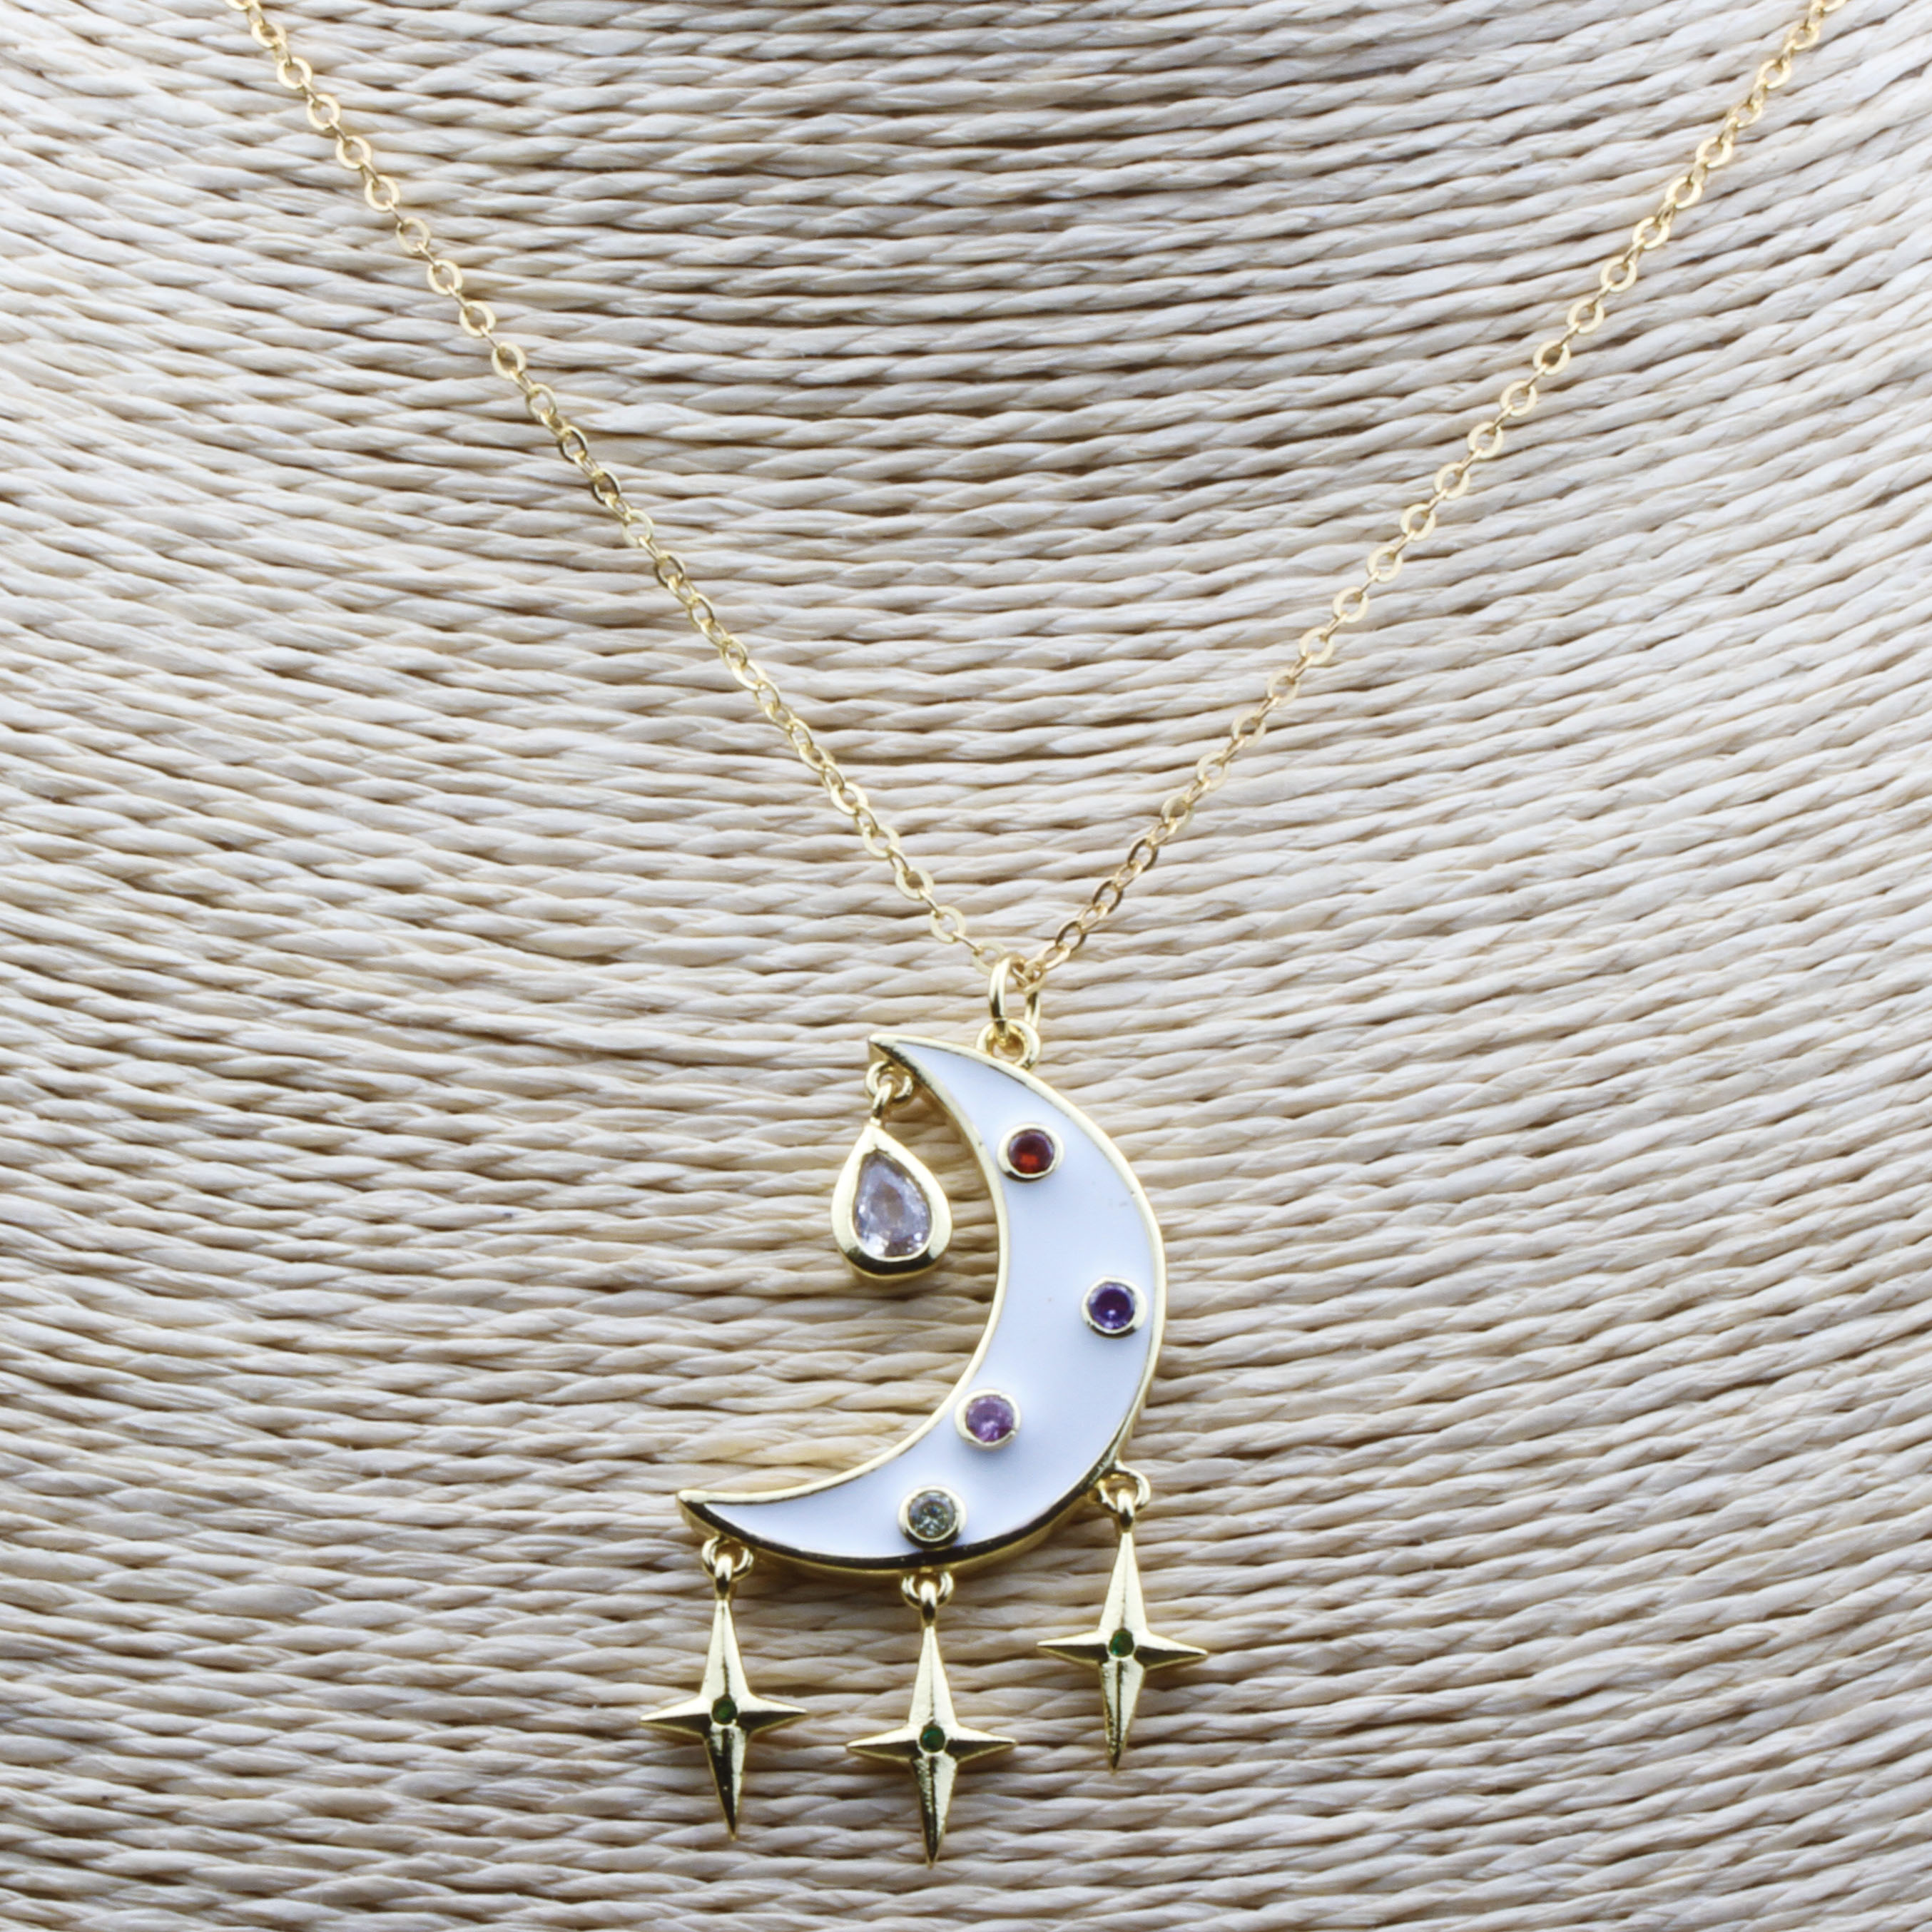 New Trendy Dangle Enameled Tassels Pendant Necklace Metal Copper Link Chain Moon Star Shape Necklaces For Women Jewelry Gift